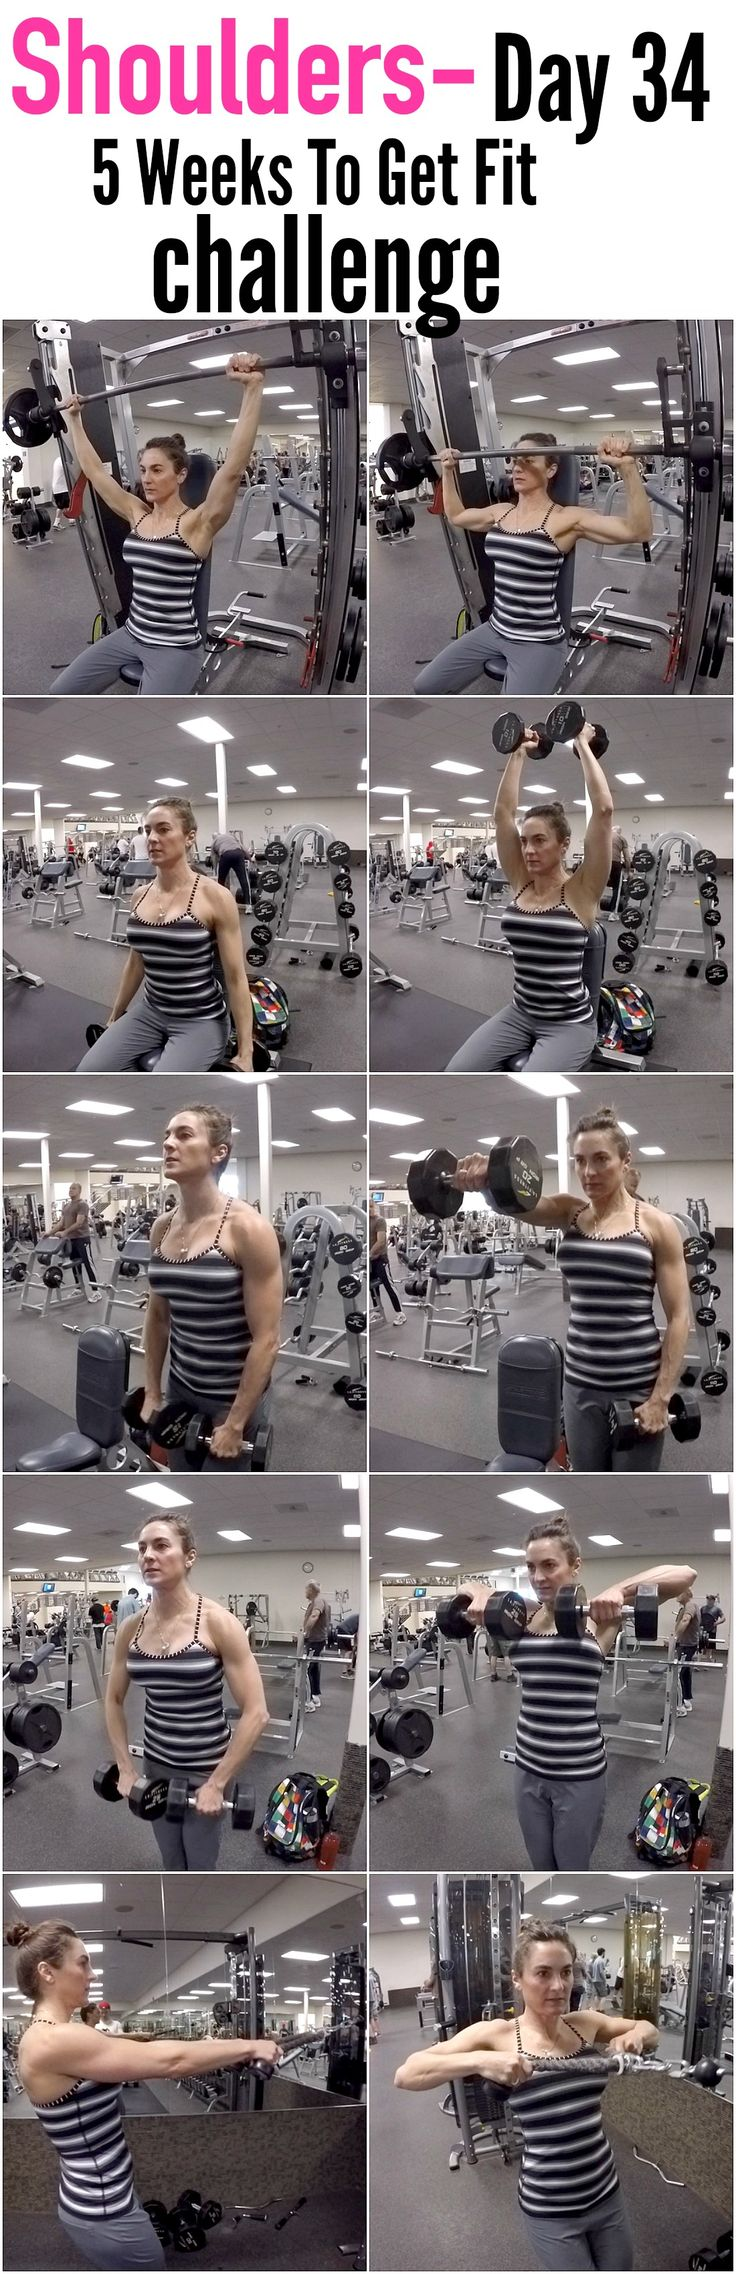 5 Weeks To Get Fit Challenge Day 34-SHOULDERS!